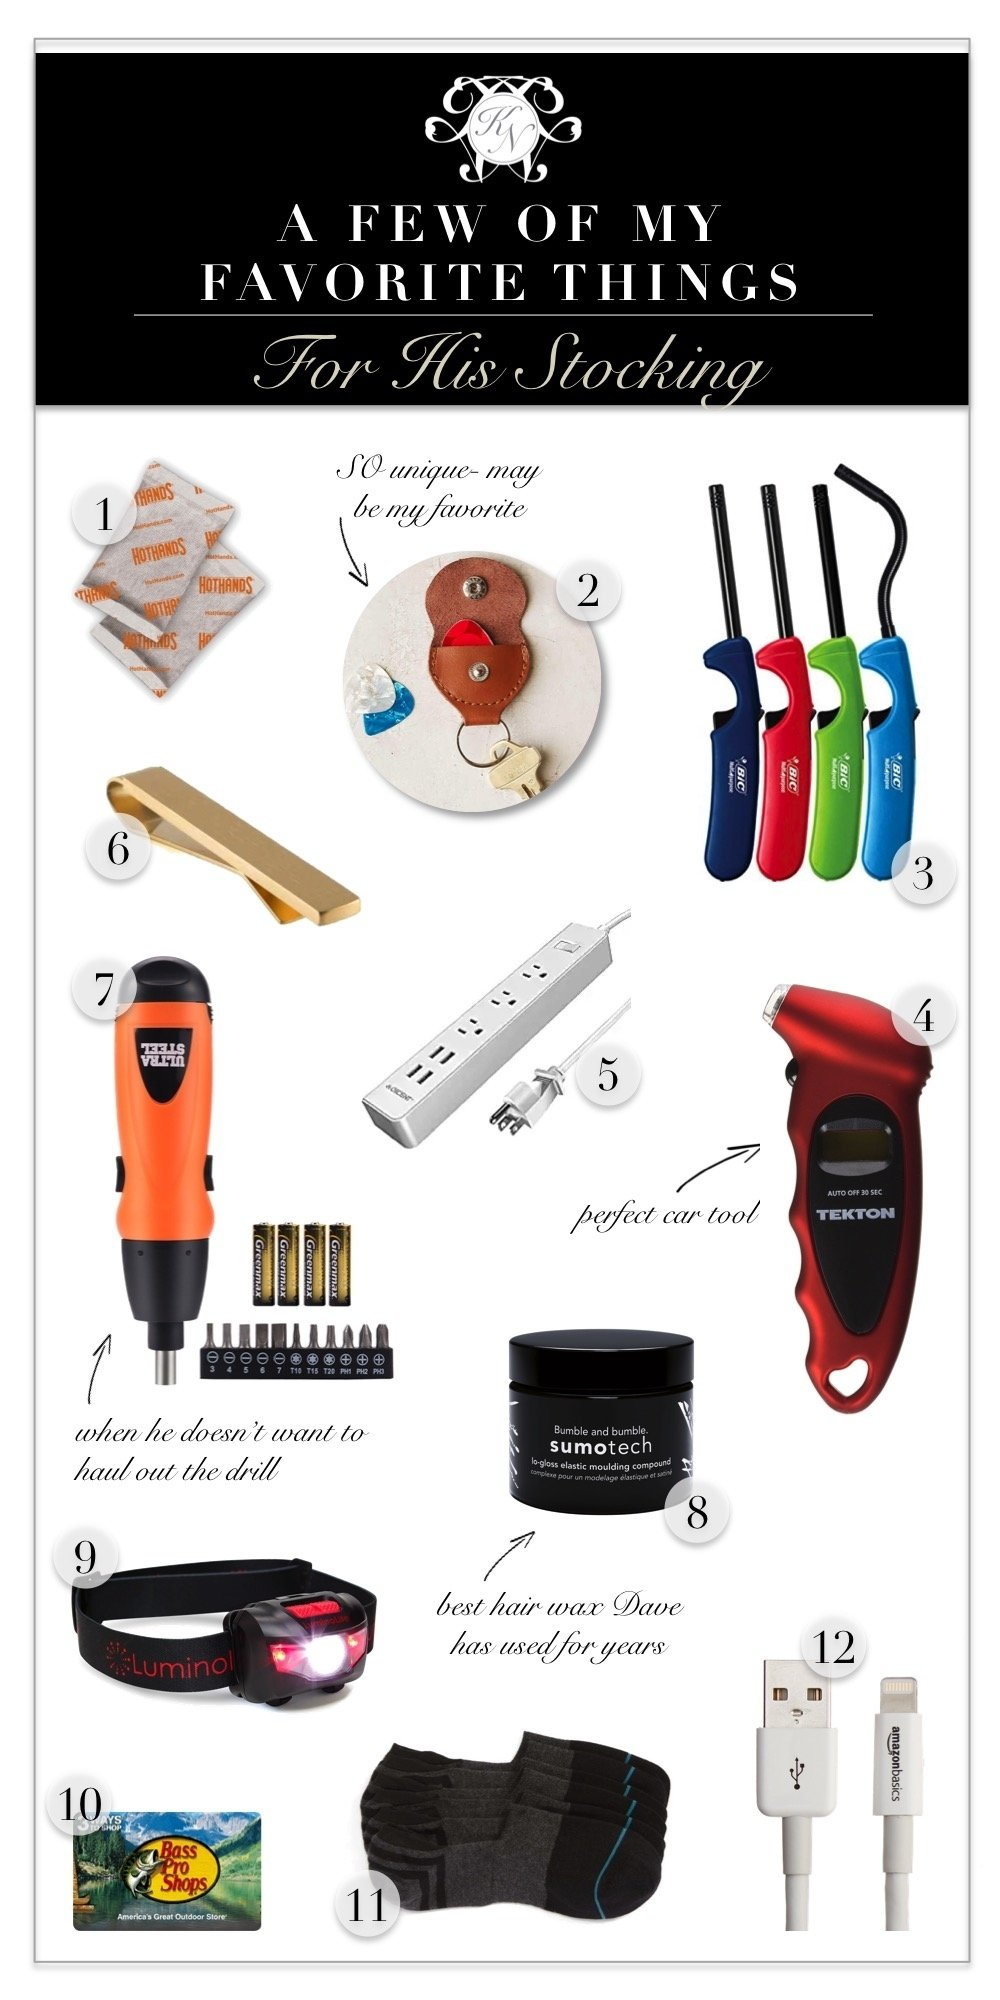 10 Fabulous Stocking Stuffers For Men Ideas a few of my favorite things a stocking stuffer gift guide for him 1 2020